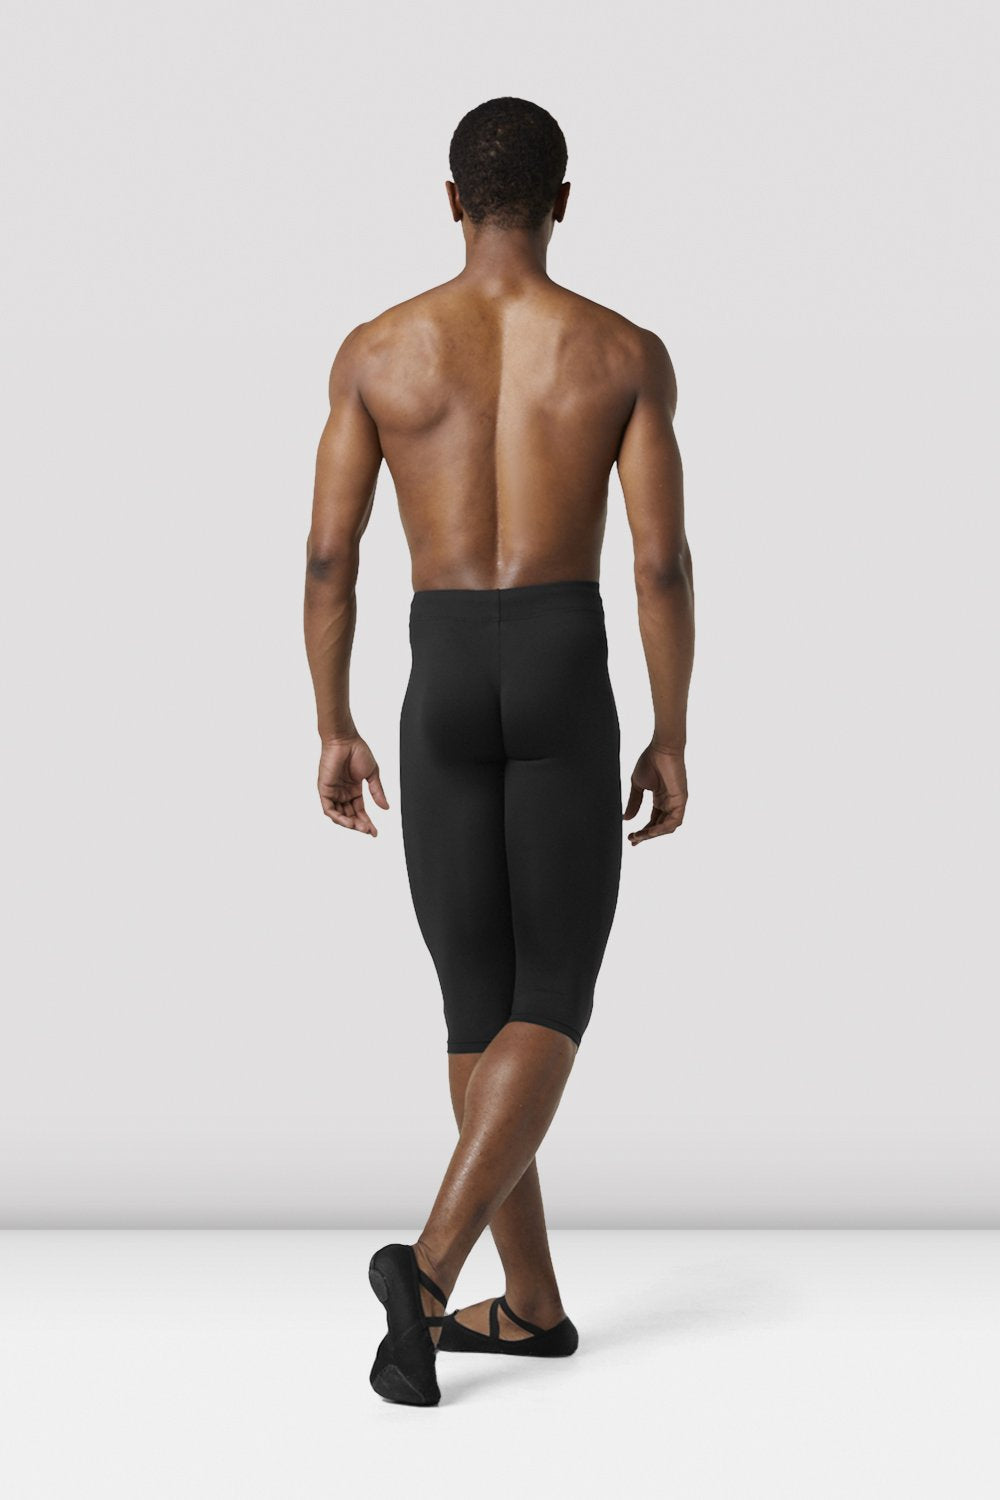 Mens Knee Length Rehearsal Tights - BLOCH US